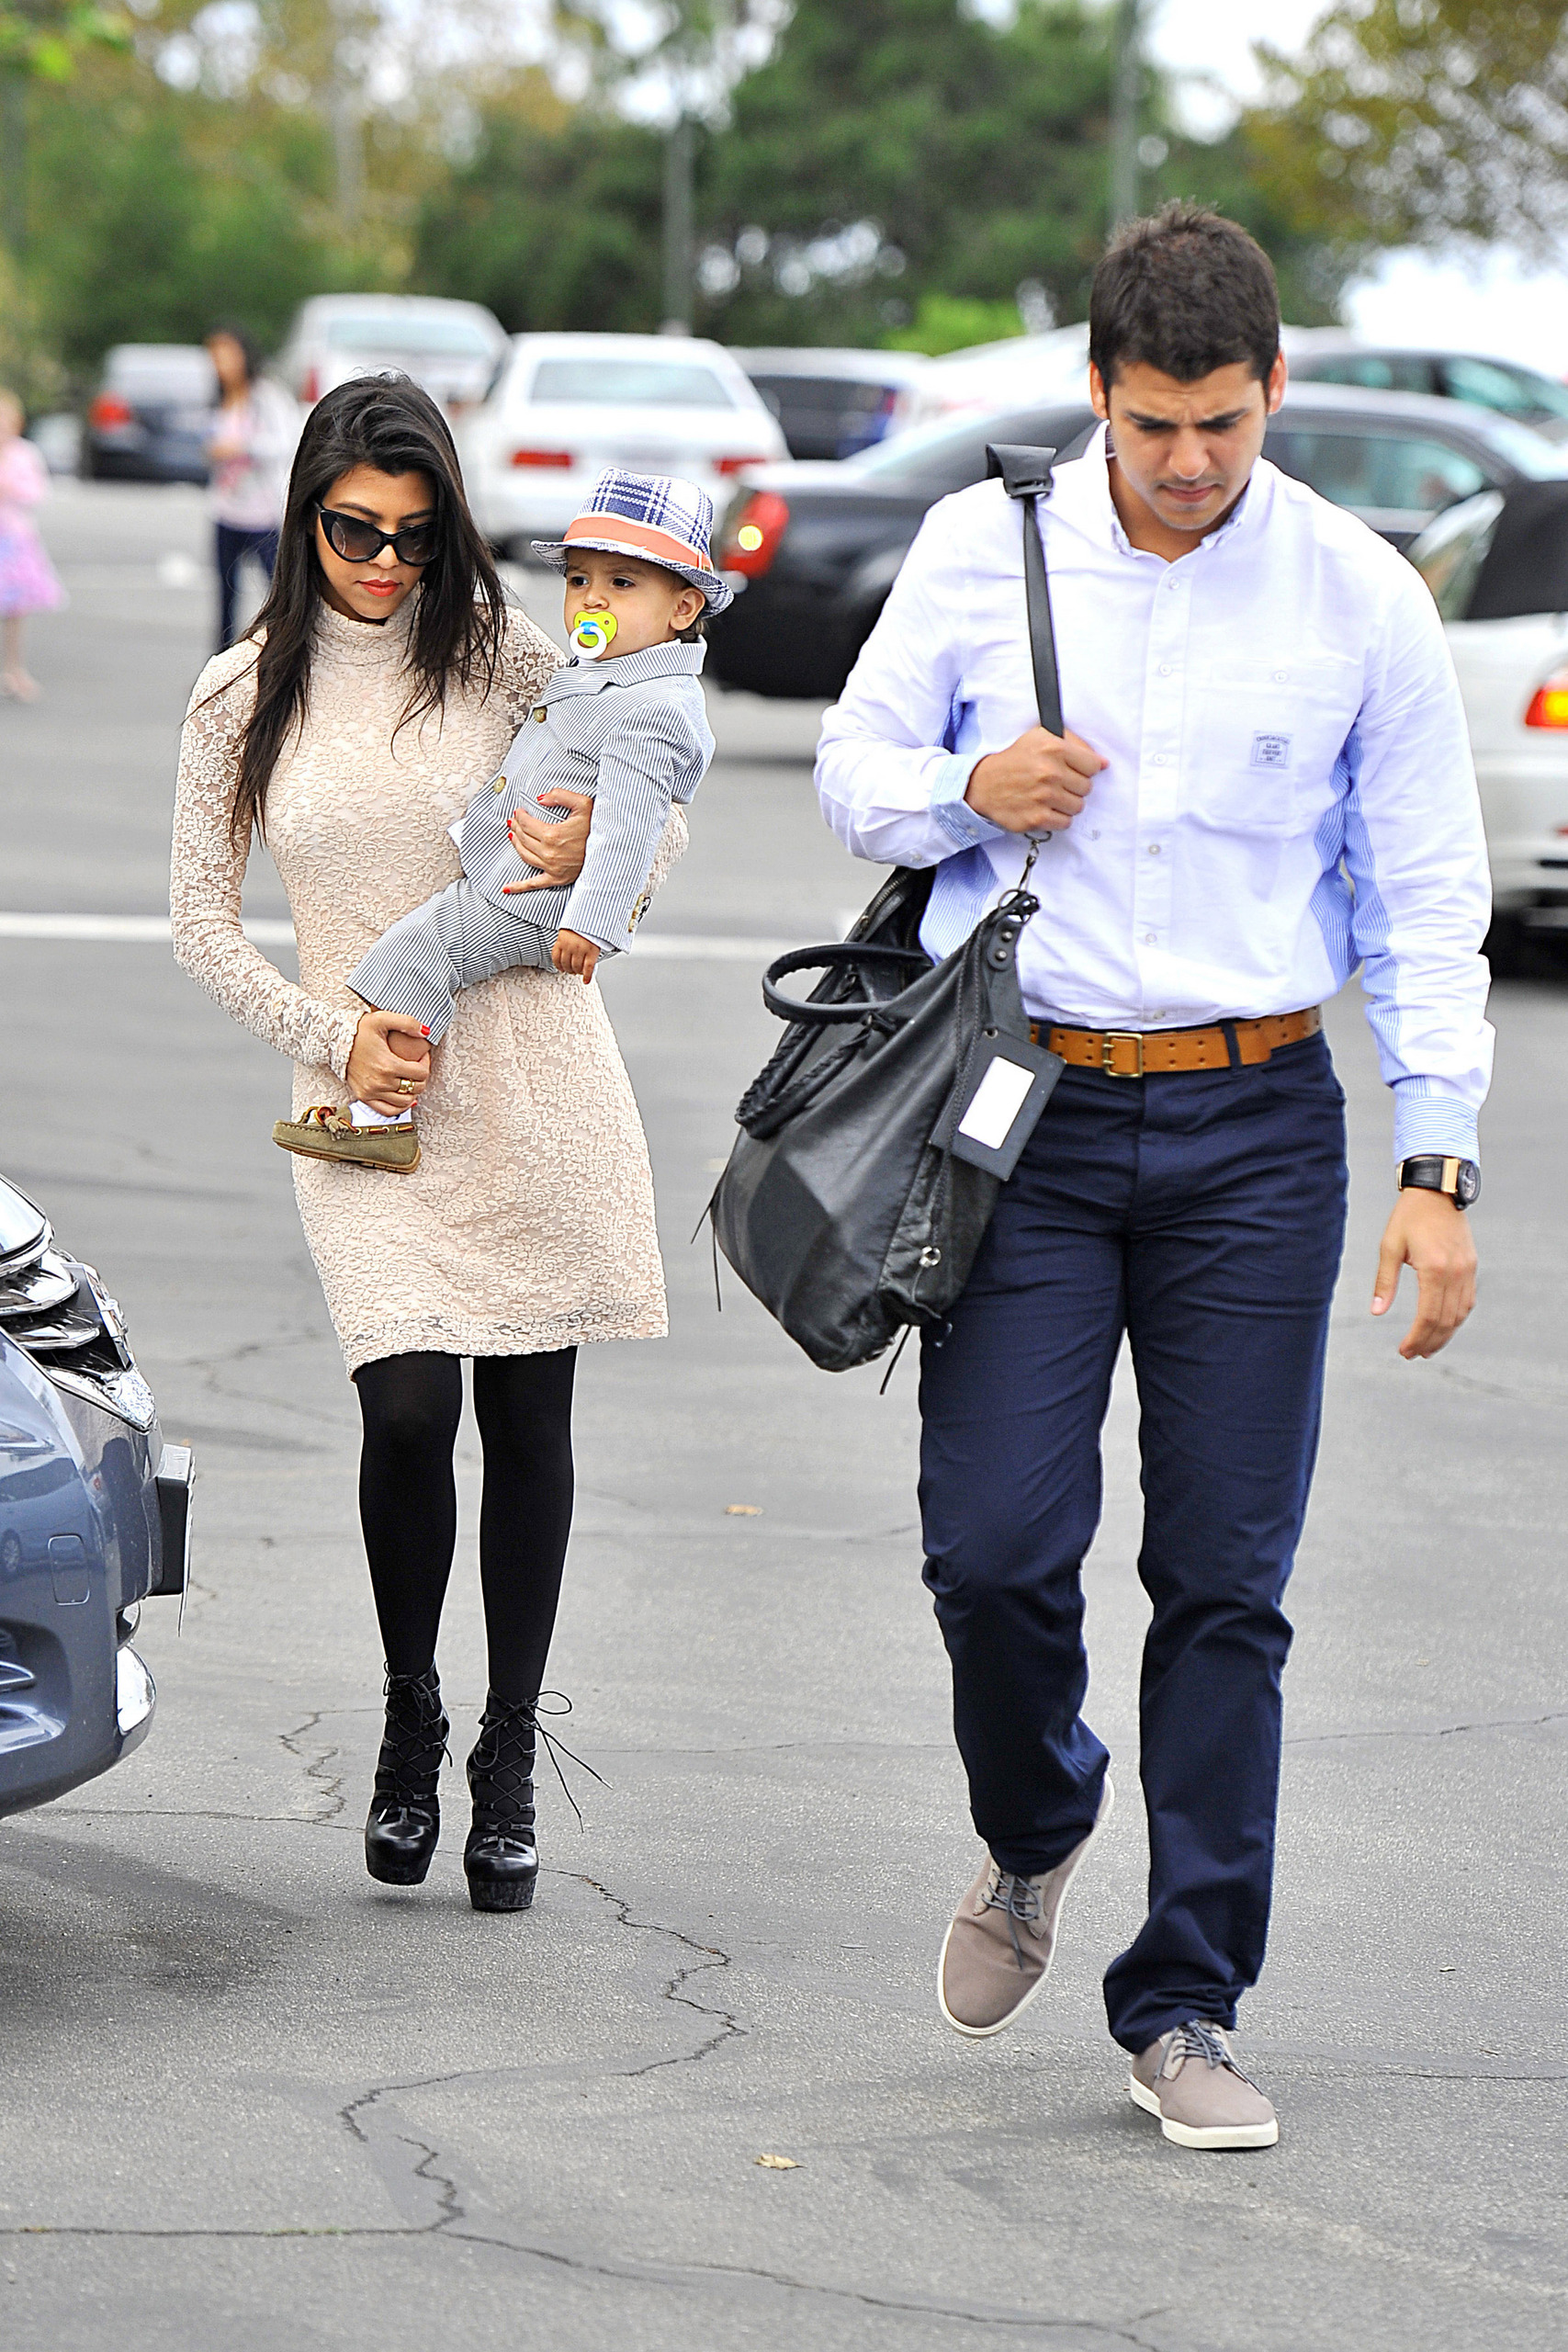 Kourtney Kardashian Welcomes Baby Daughter Penelope Scotland